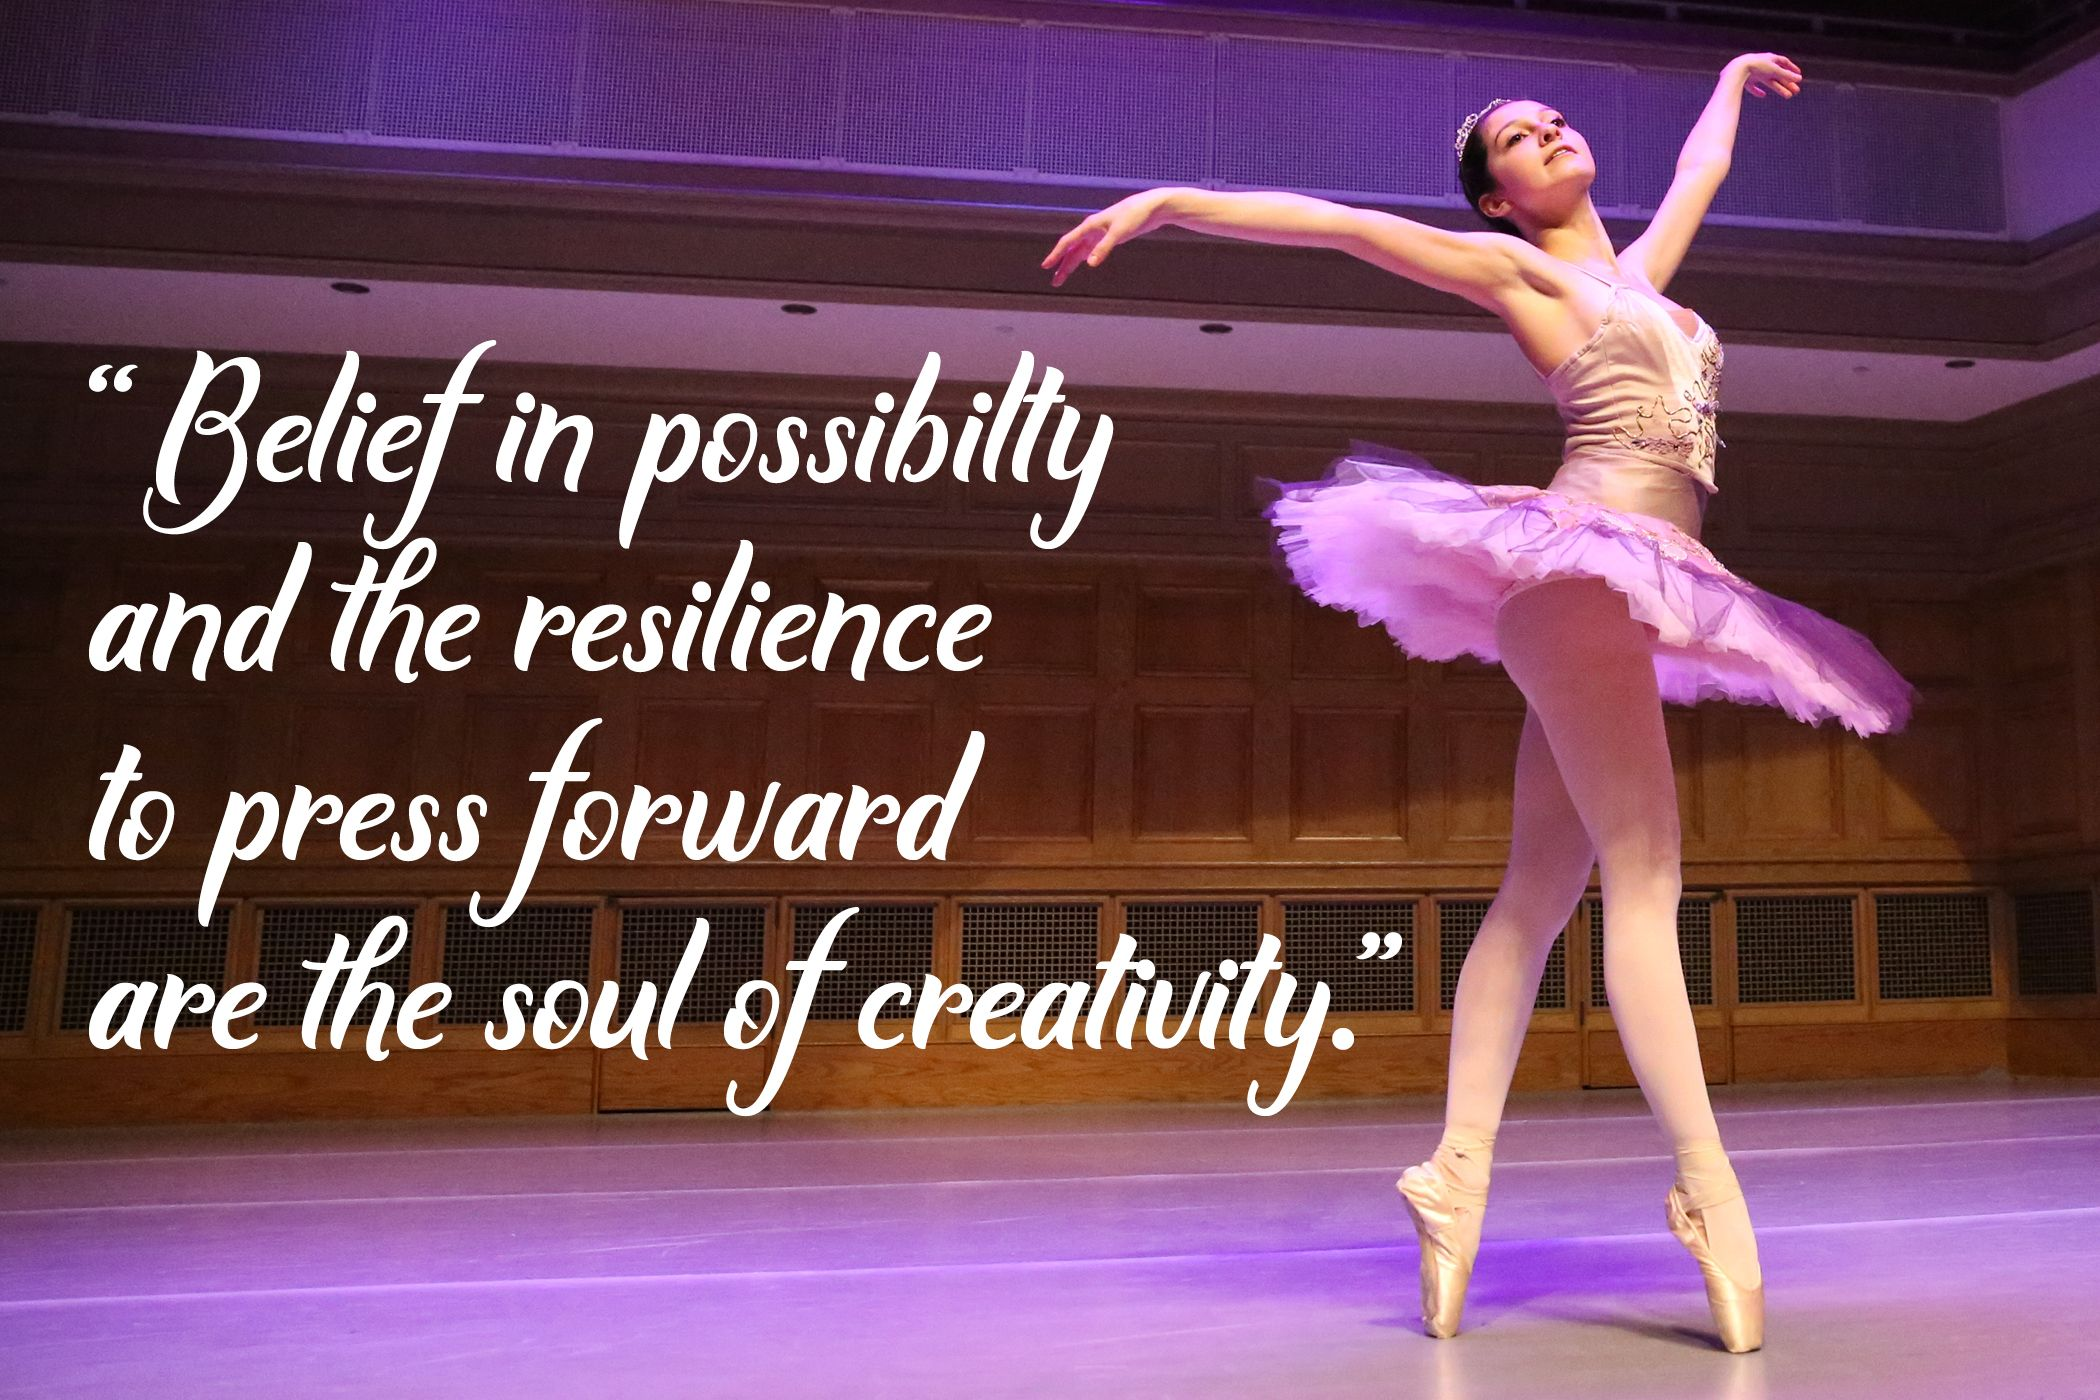 Belief in possibility and the resilience to move forward are the soul of creativity